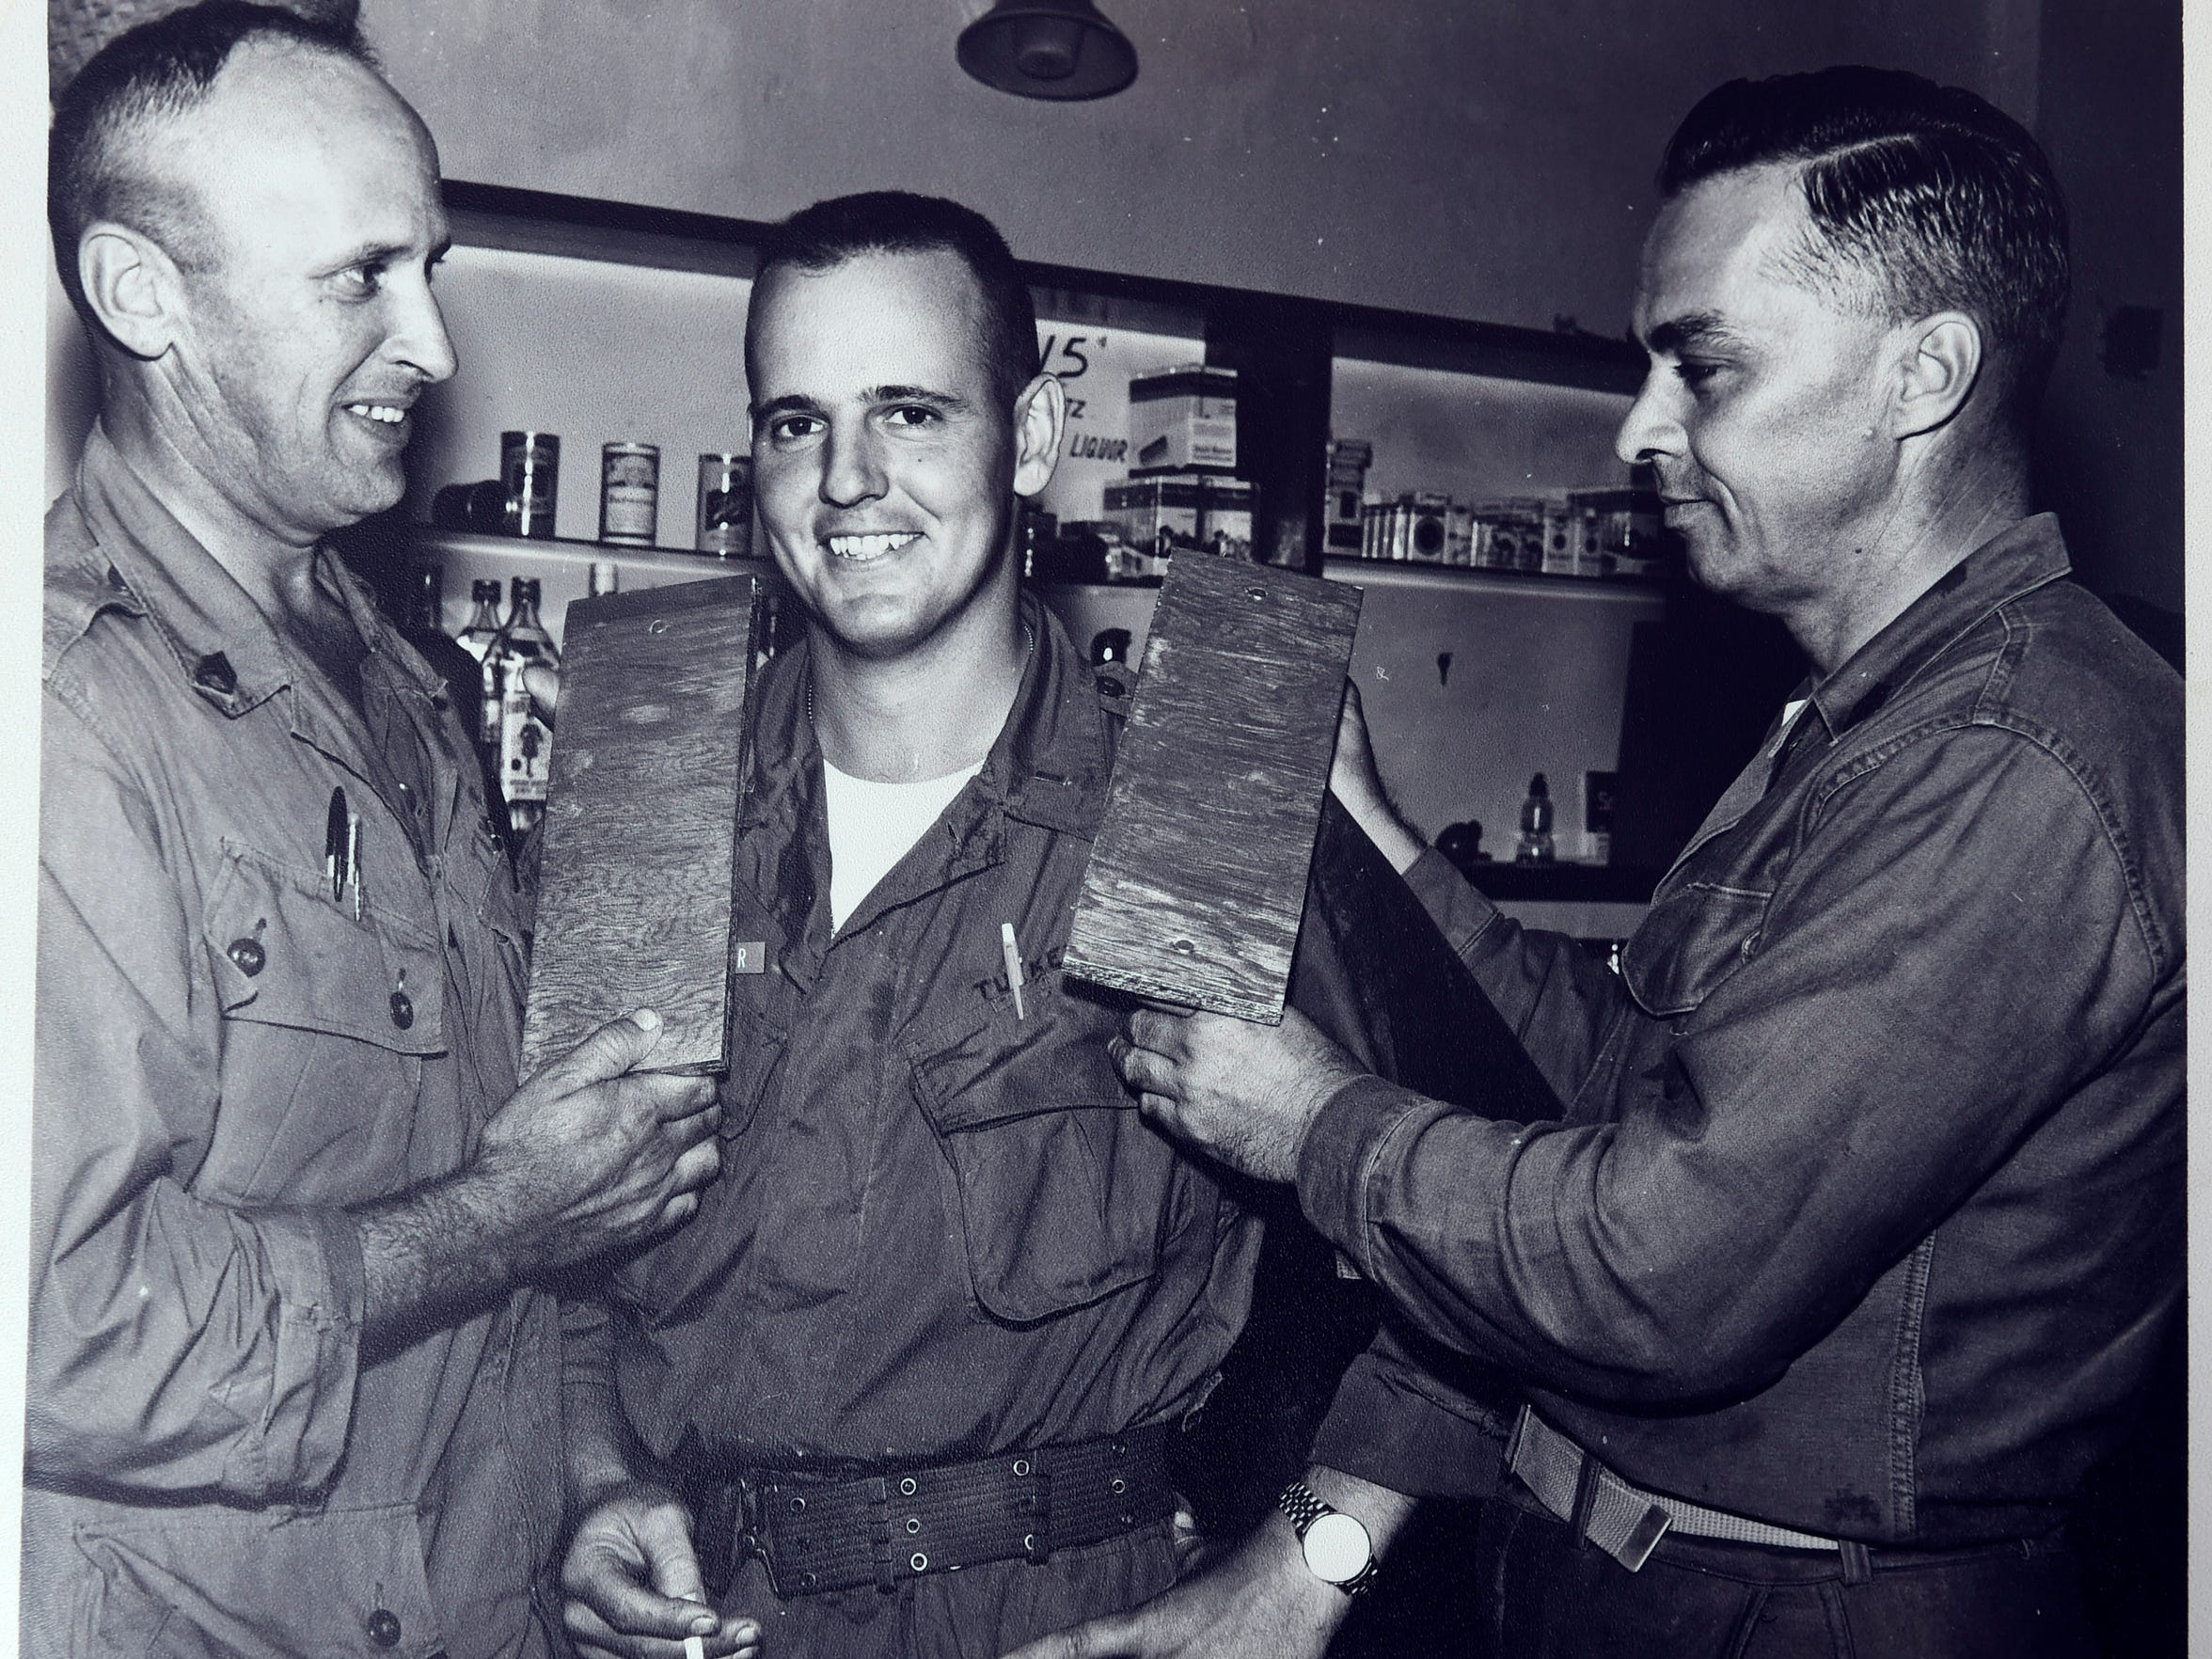 Vietnam veteran Fred Tucker, center, has his lieutenant bars put on his shoulders by his sergeants as a joke.